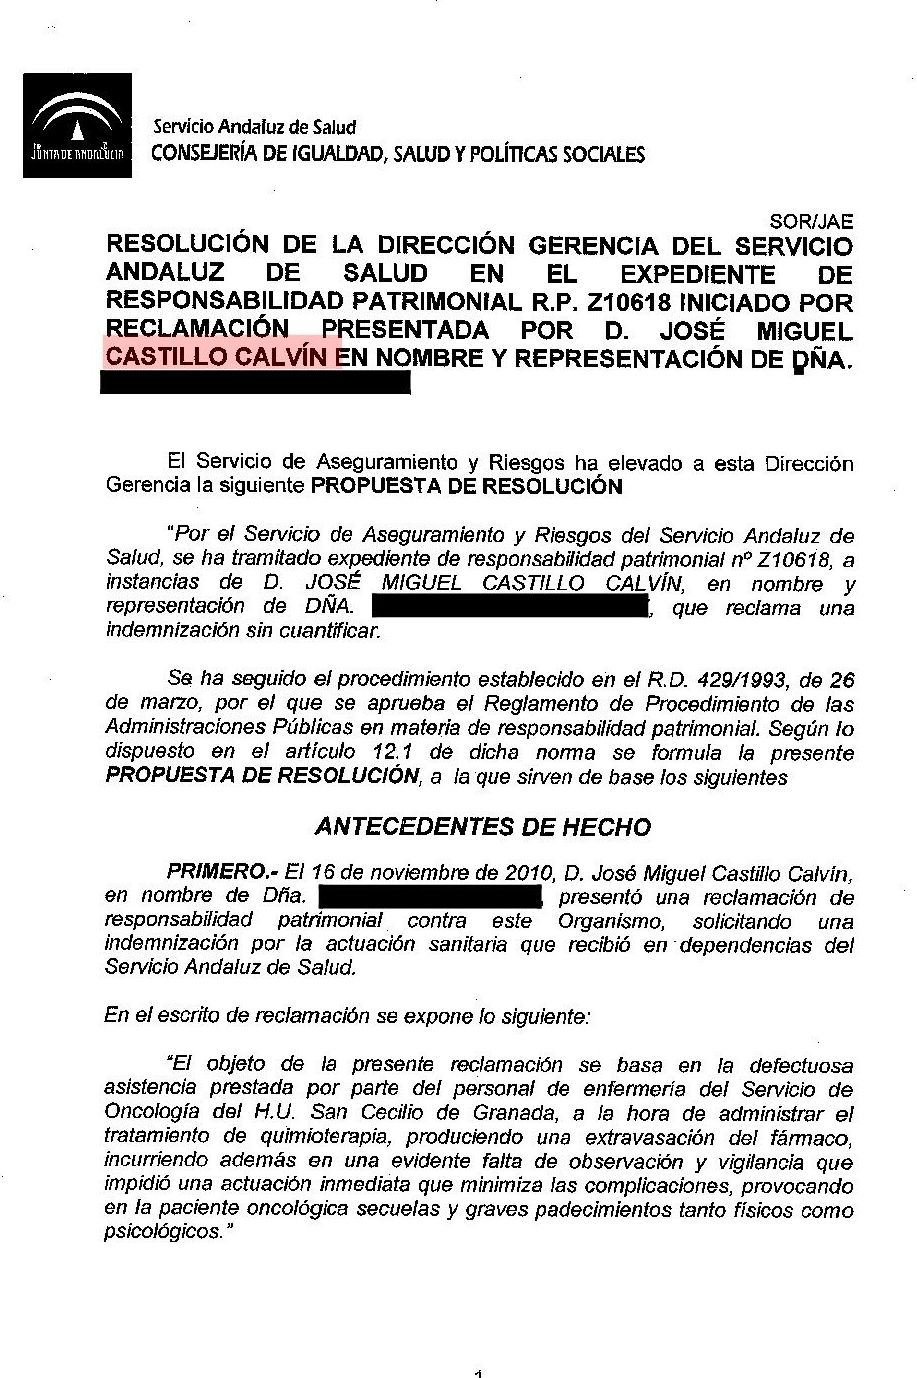 resolución favorable que indemniza negligencia médica }}